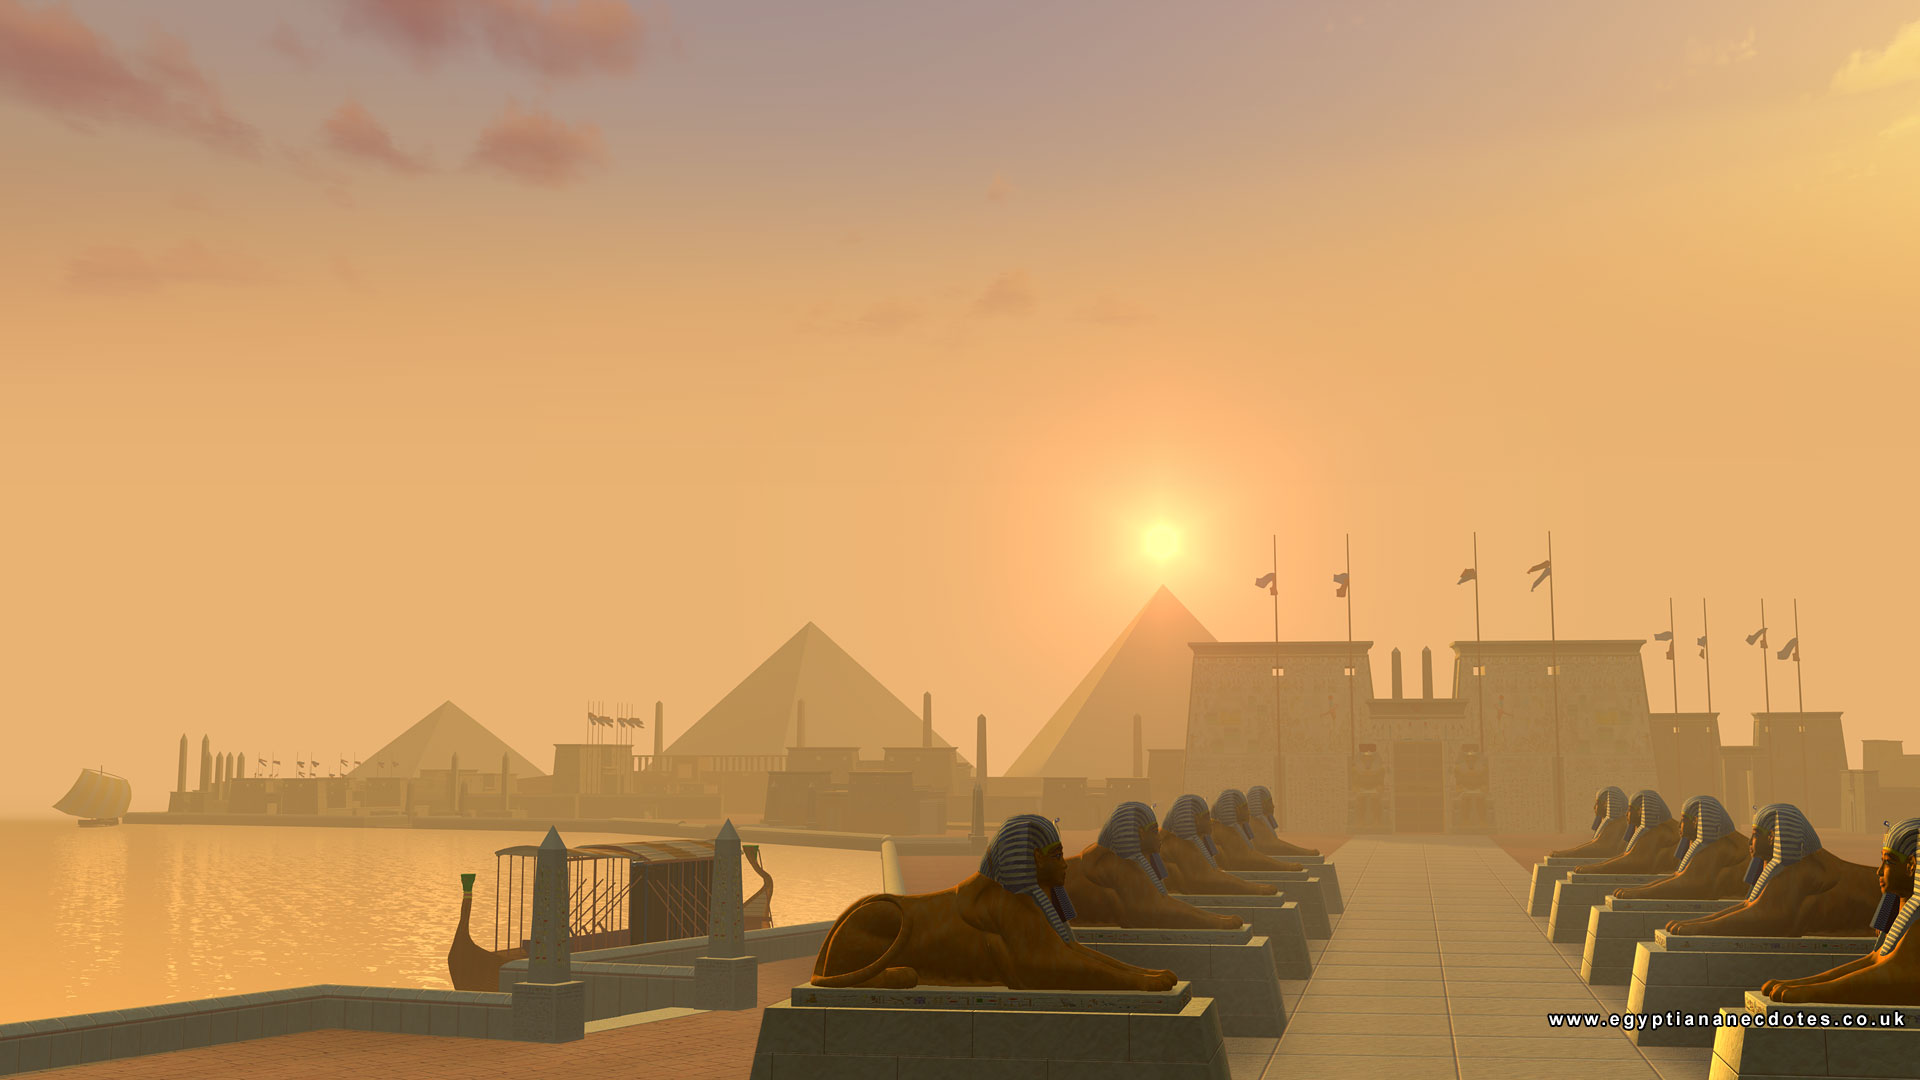 Ancient Egypt Wallpaper - WallpaperSafari